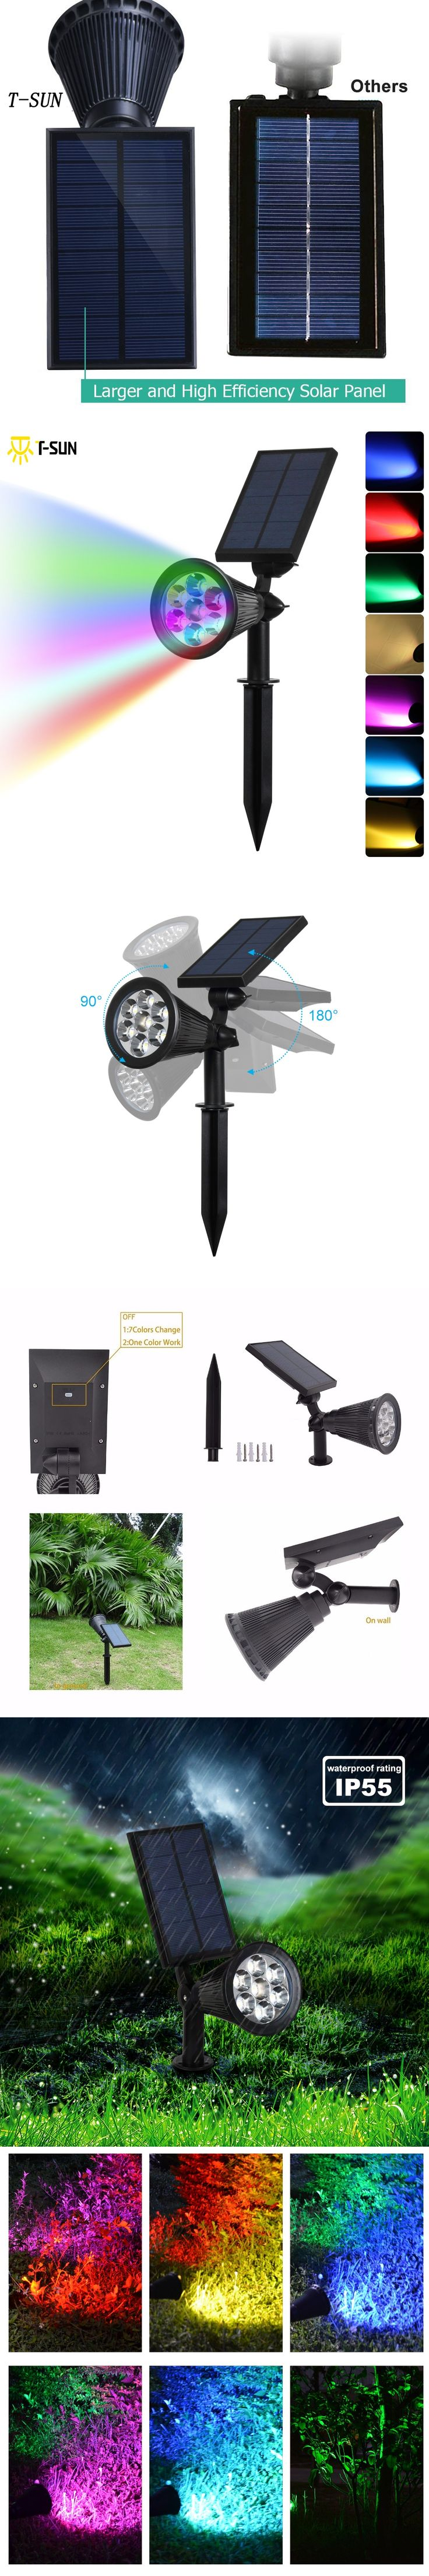 T Sun 7 Led Auto Color Changing Solar Spotlight Outdoor Lighting Ed Security